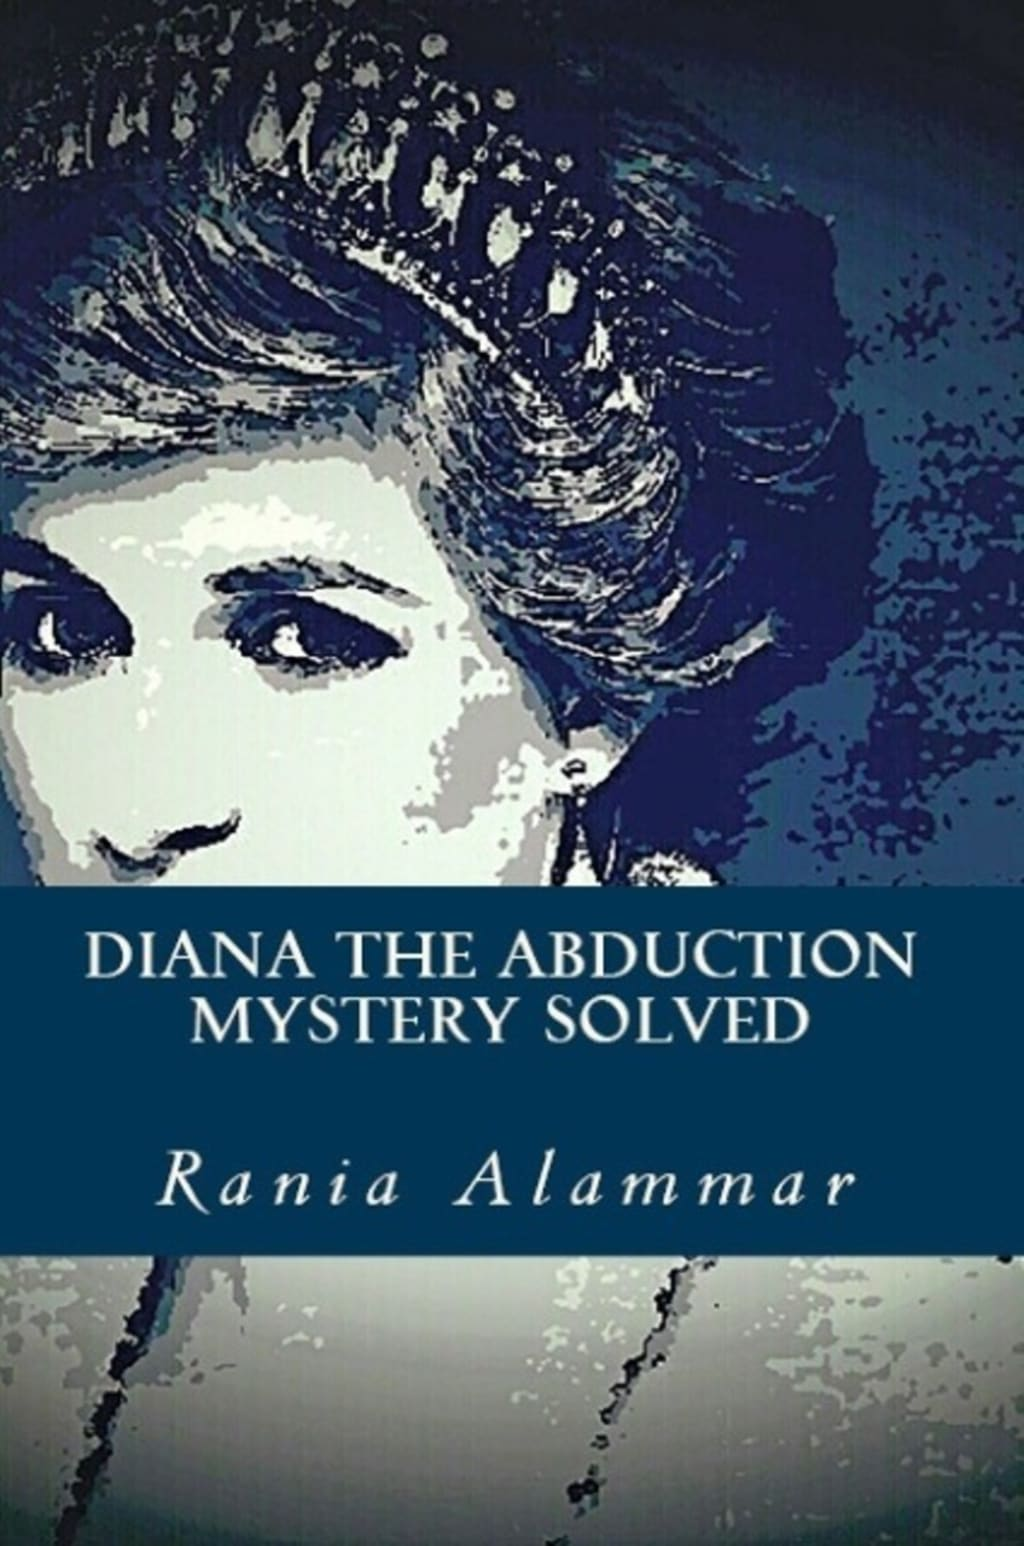 'Diana The Abduction Mystery Solved' - Interview with Rania Alammar